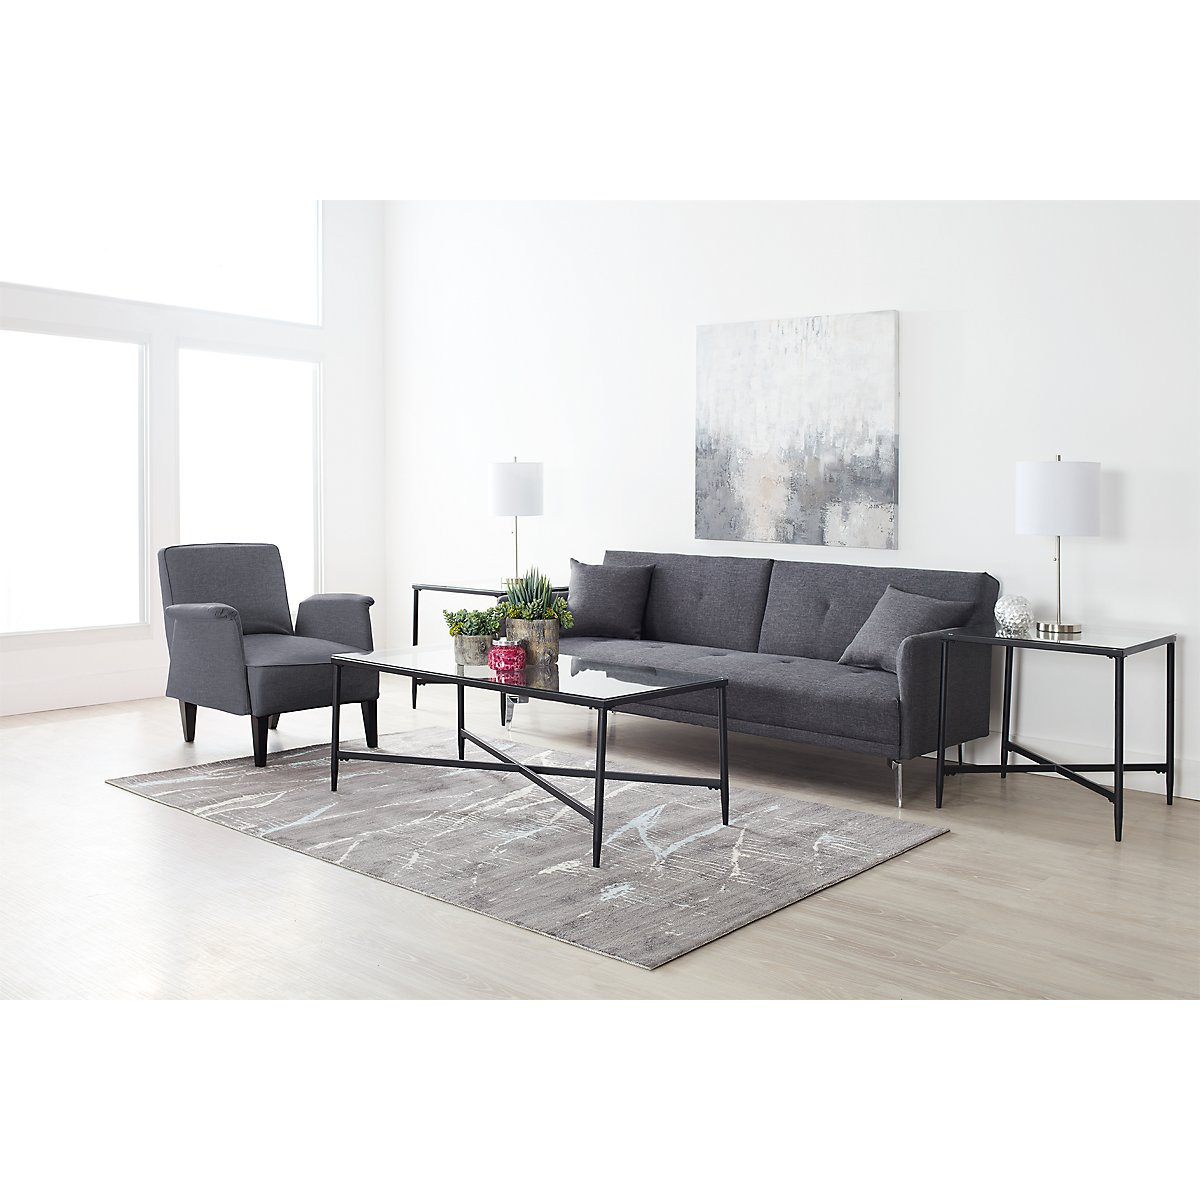 City Furniture: Amani Dark Gray 7-Piece Living Room Package